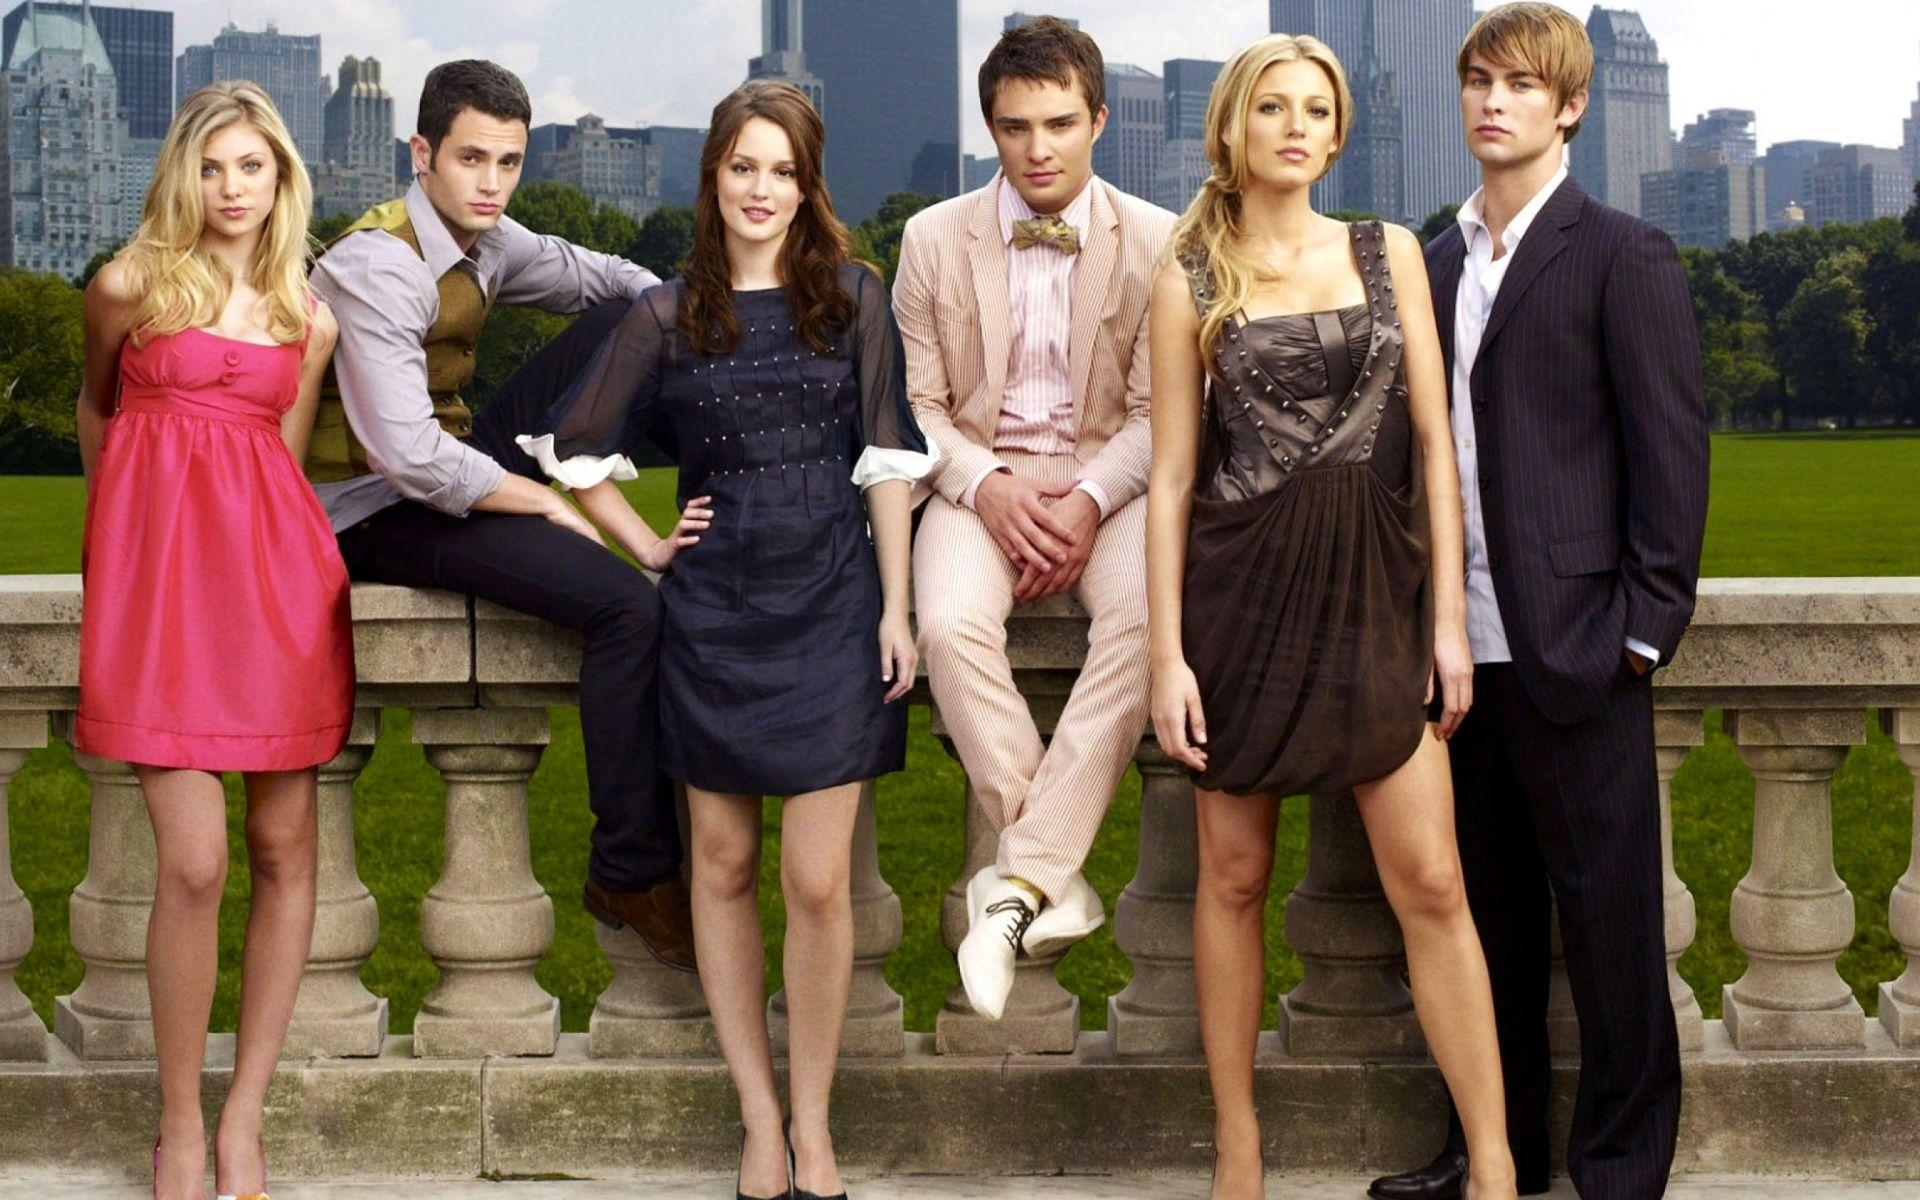 Gossip Girl Wallpapers for Widescreen Desktop PC 1920x1080 Full HD